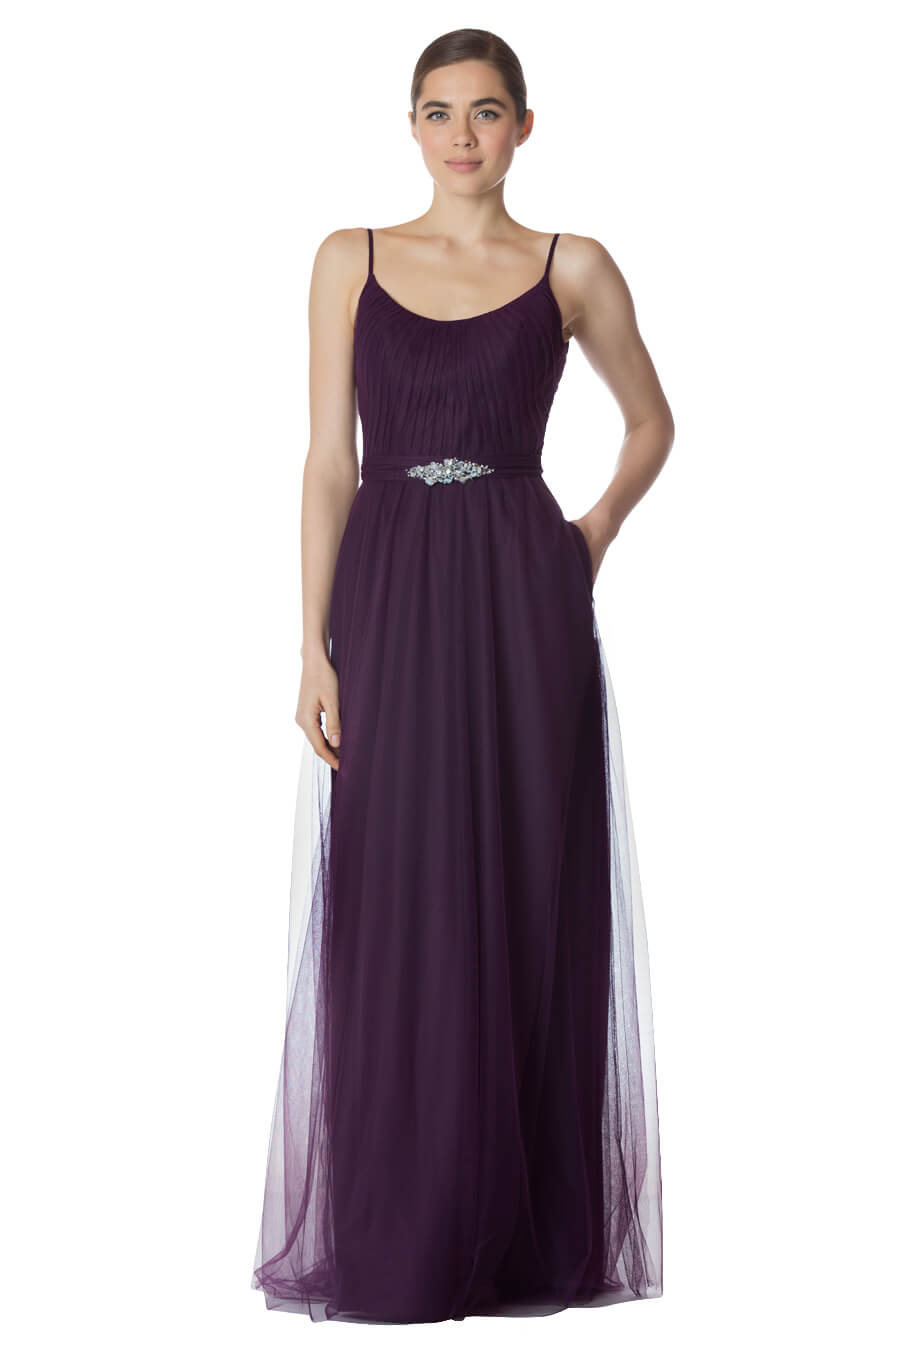 Bari jay bridesmaids bridesmaid dresses prom dresses formal style 1770 available short 1770 s ombrellifo Images